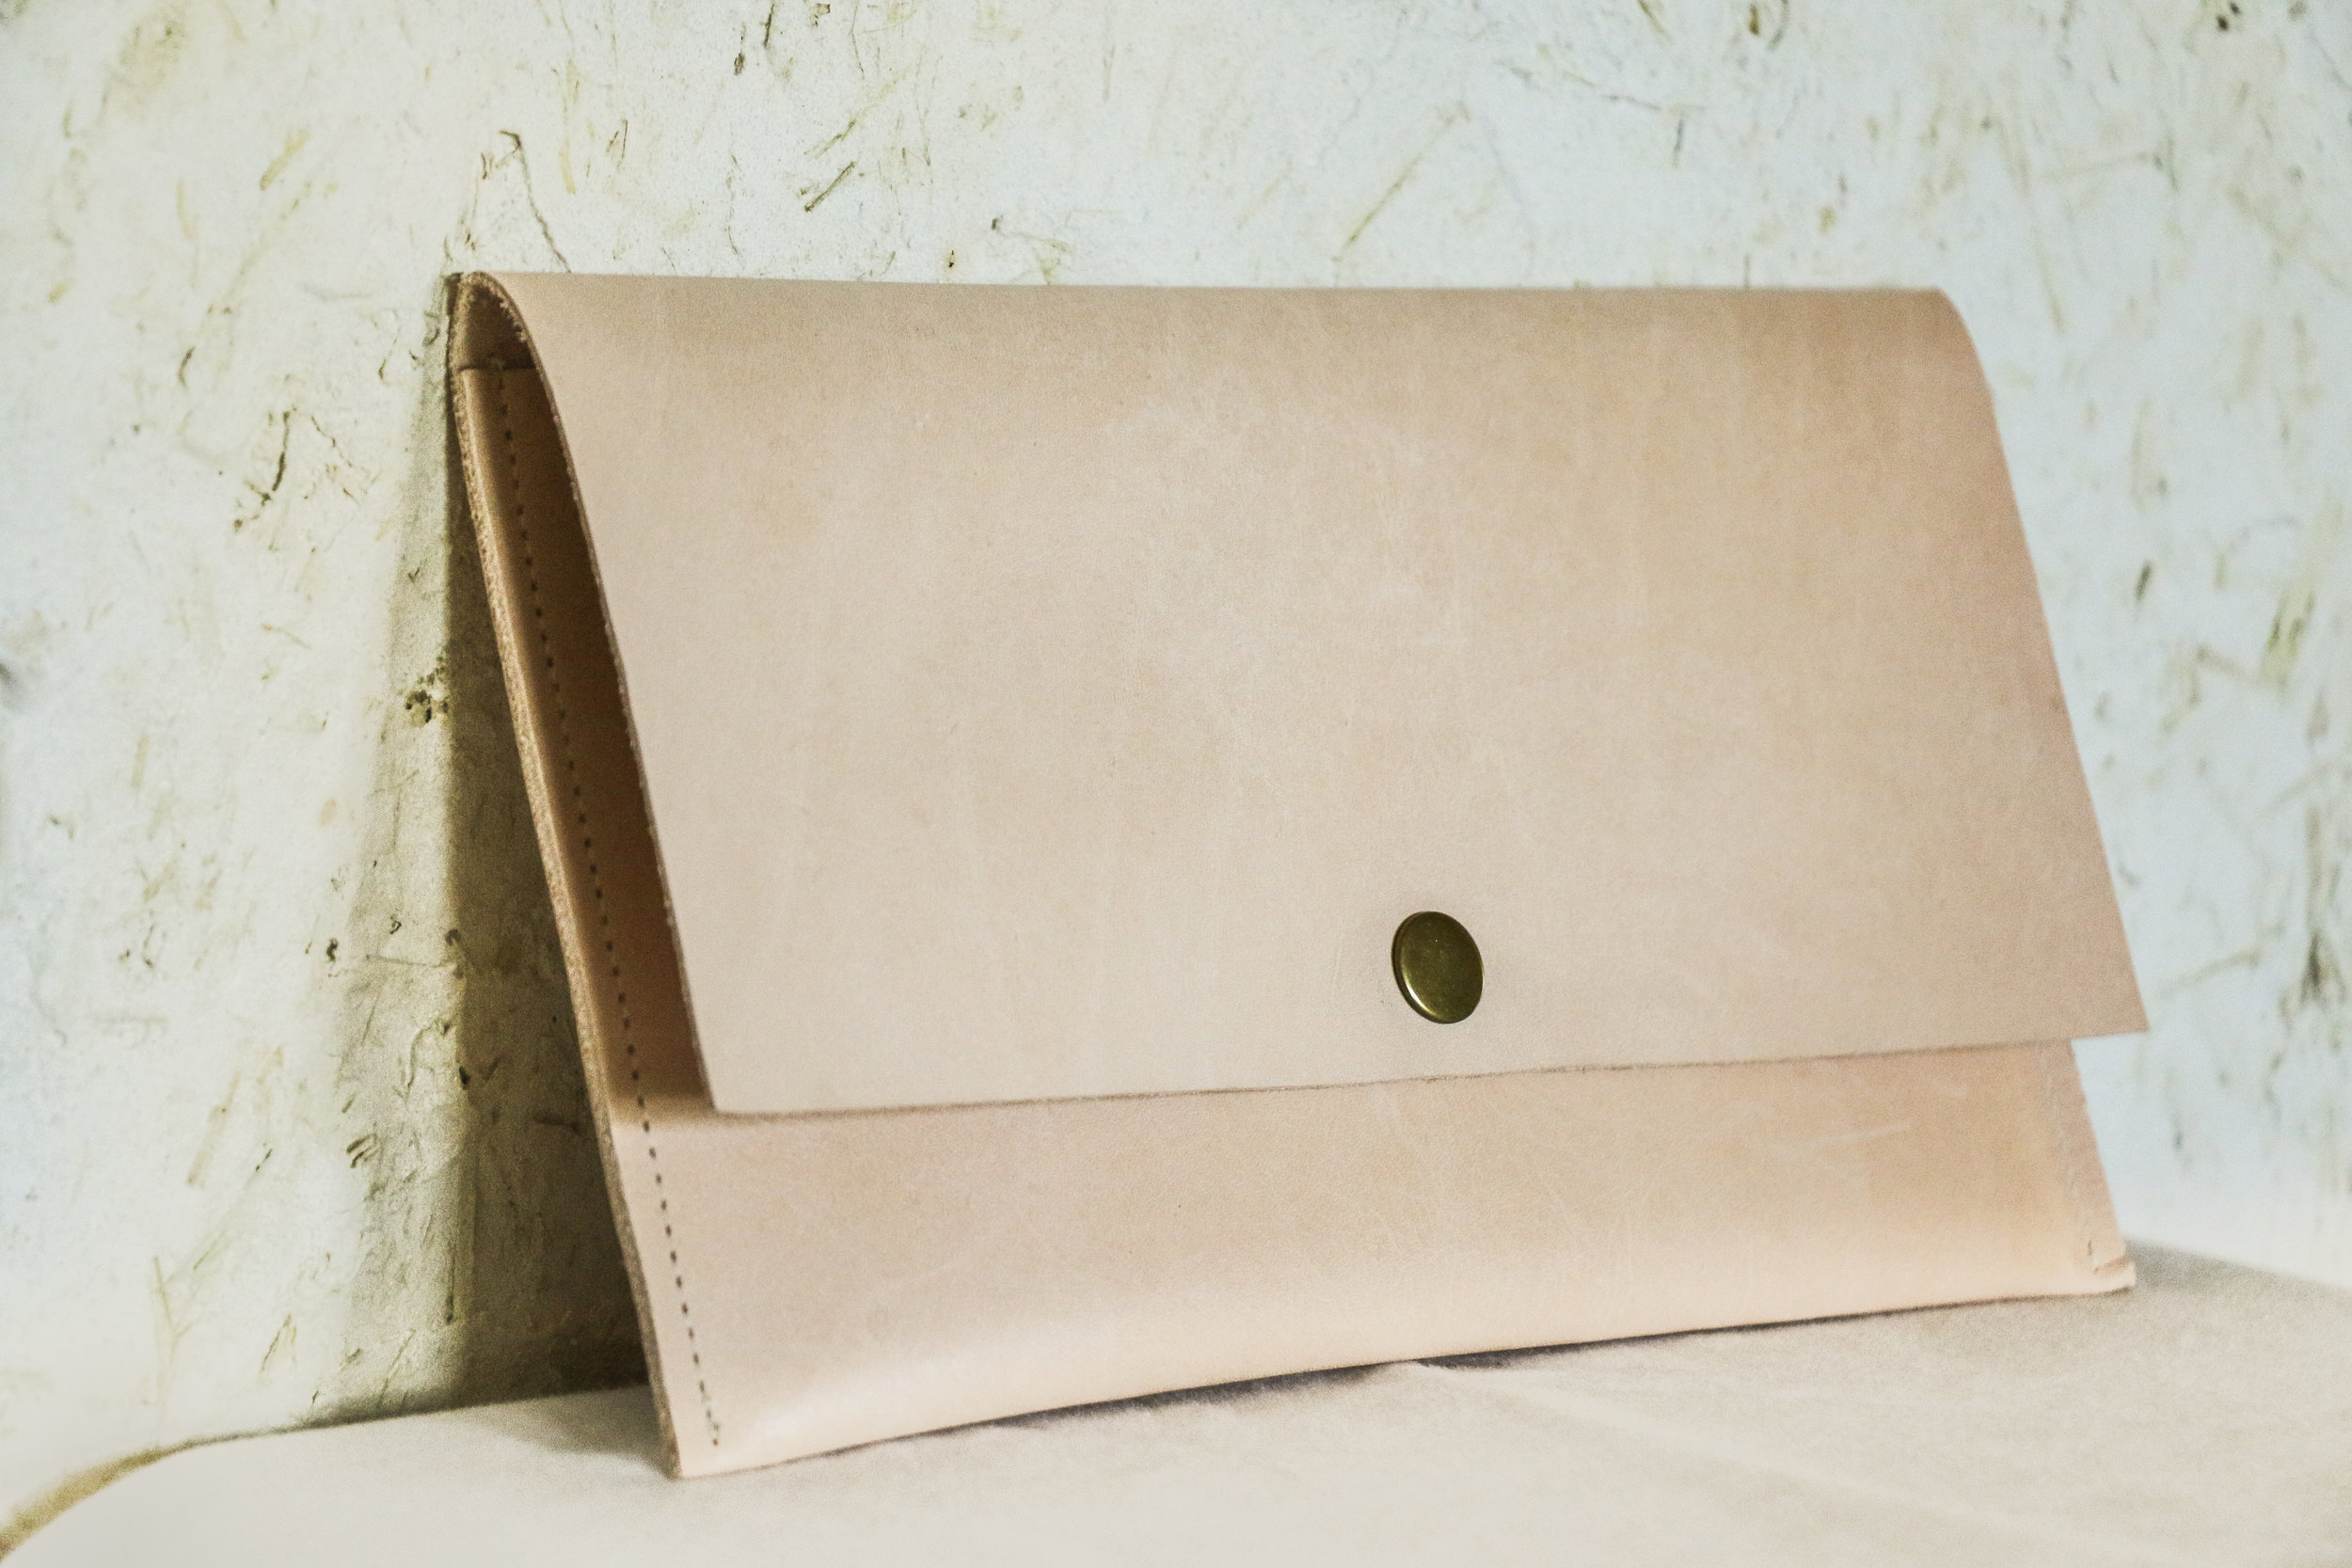 Natural leather clutch by Linny Kenney